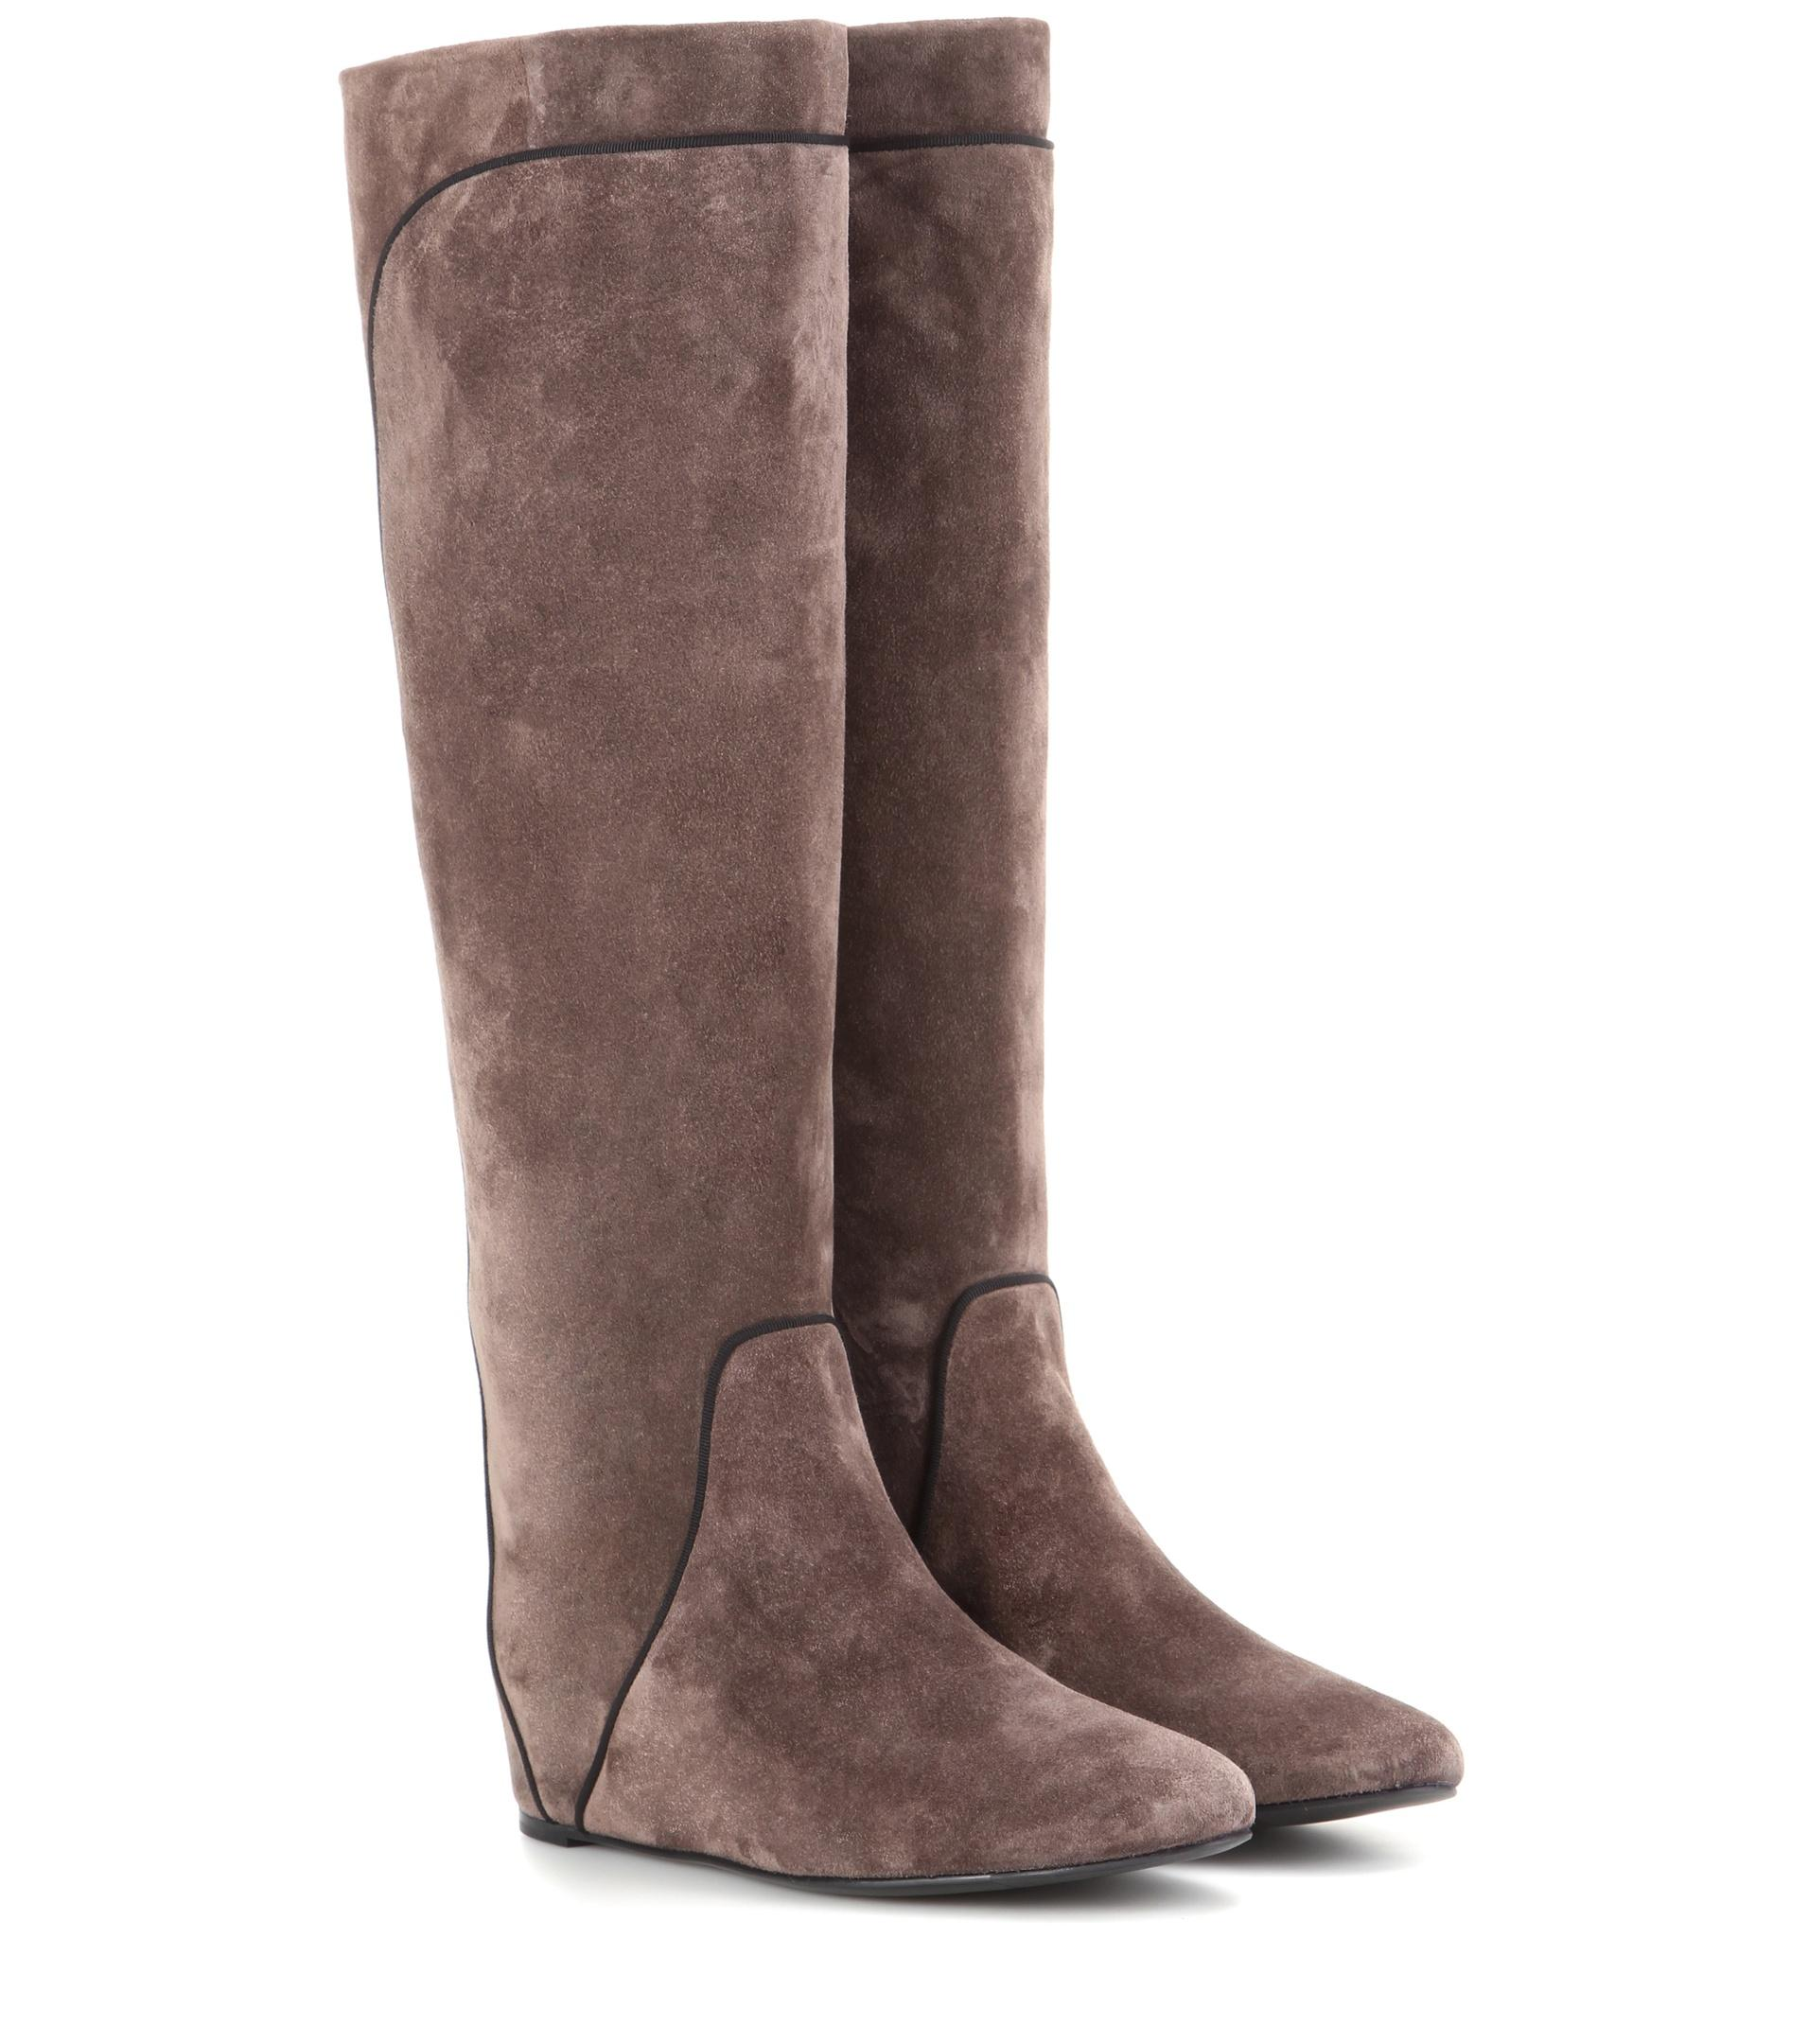 lanvin suede knee high boots in brown lyst